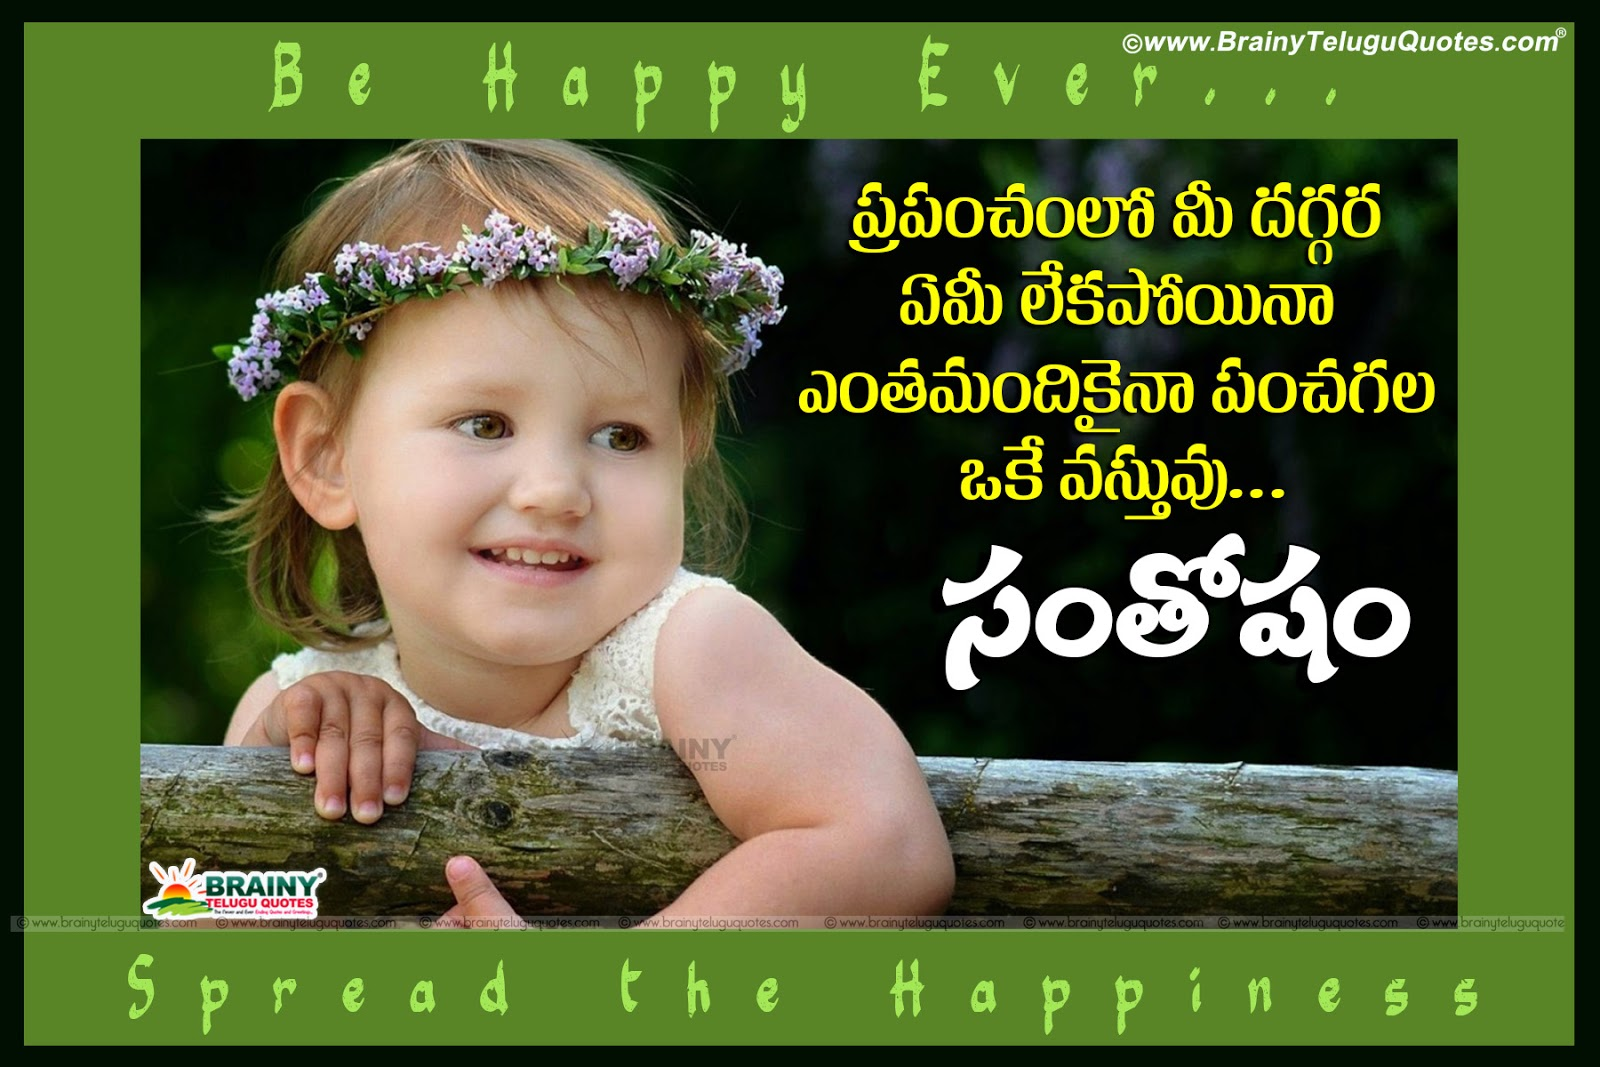 keep smiling have a nice day telugu quotations